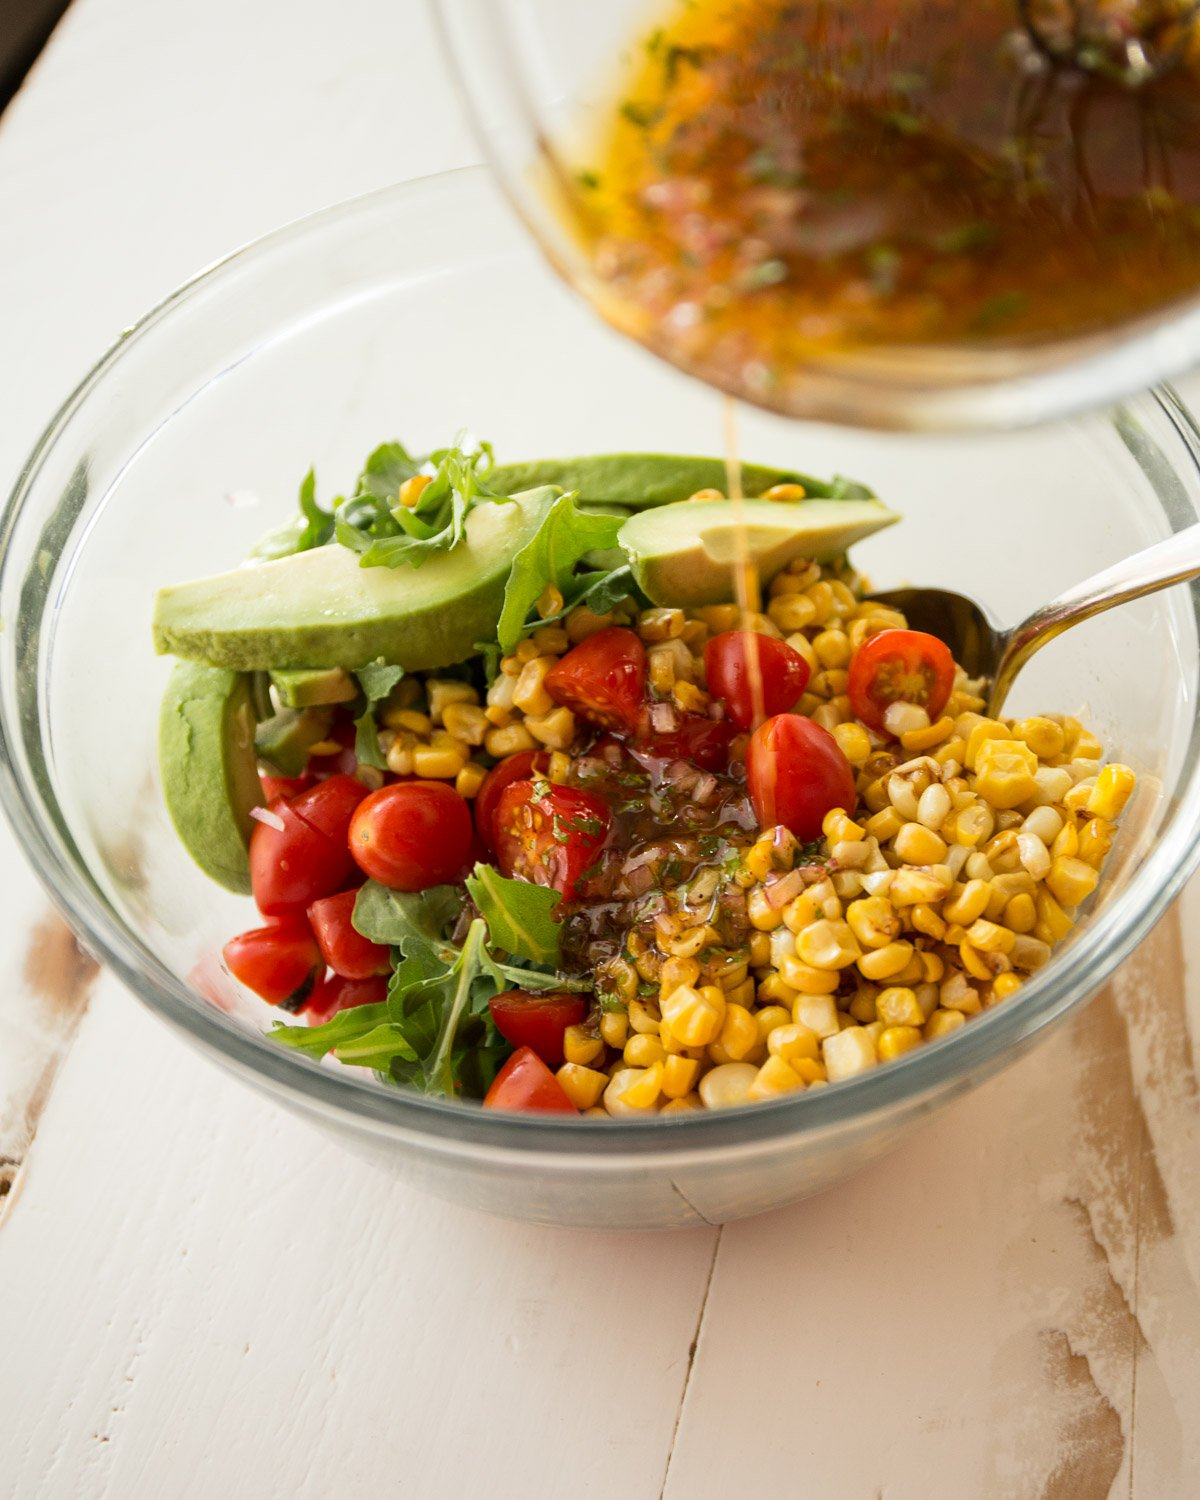 mixing corn, tomato and avocado salad in a clear glass bowl